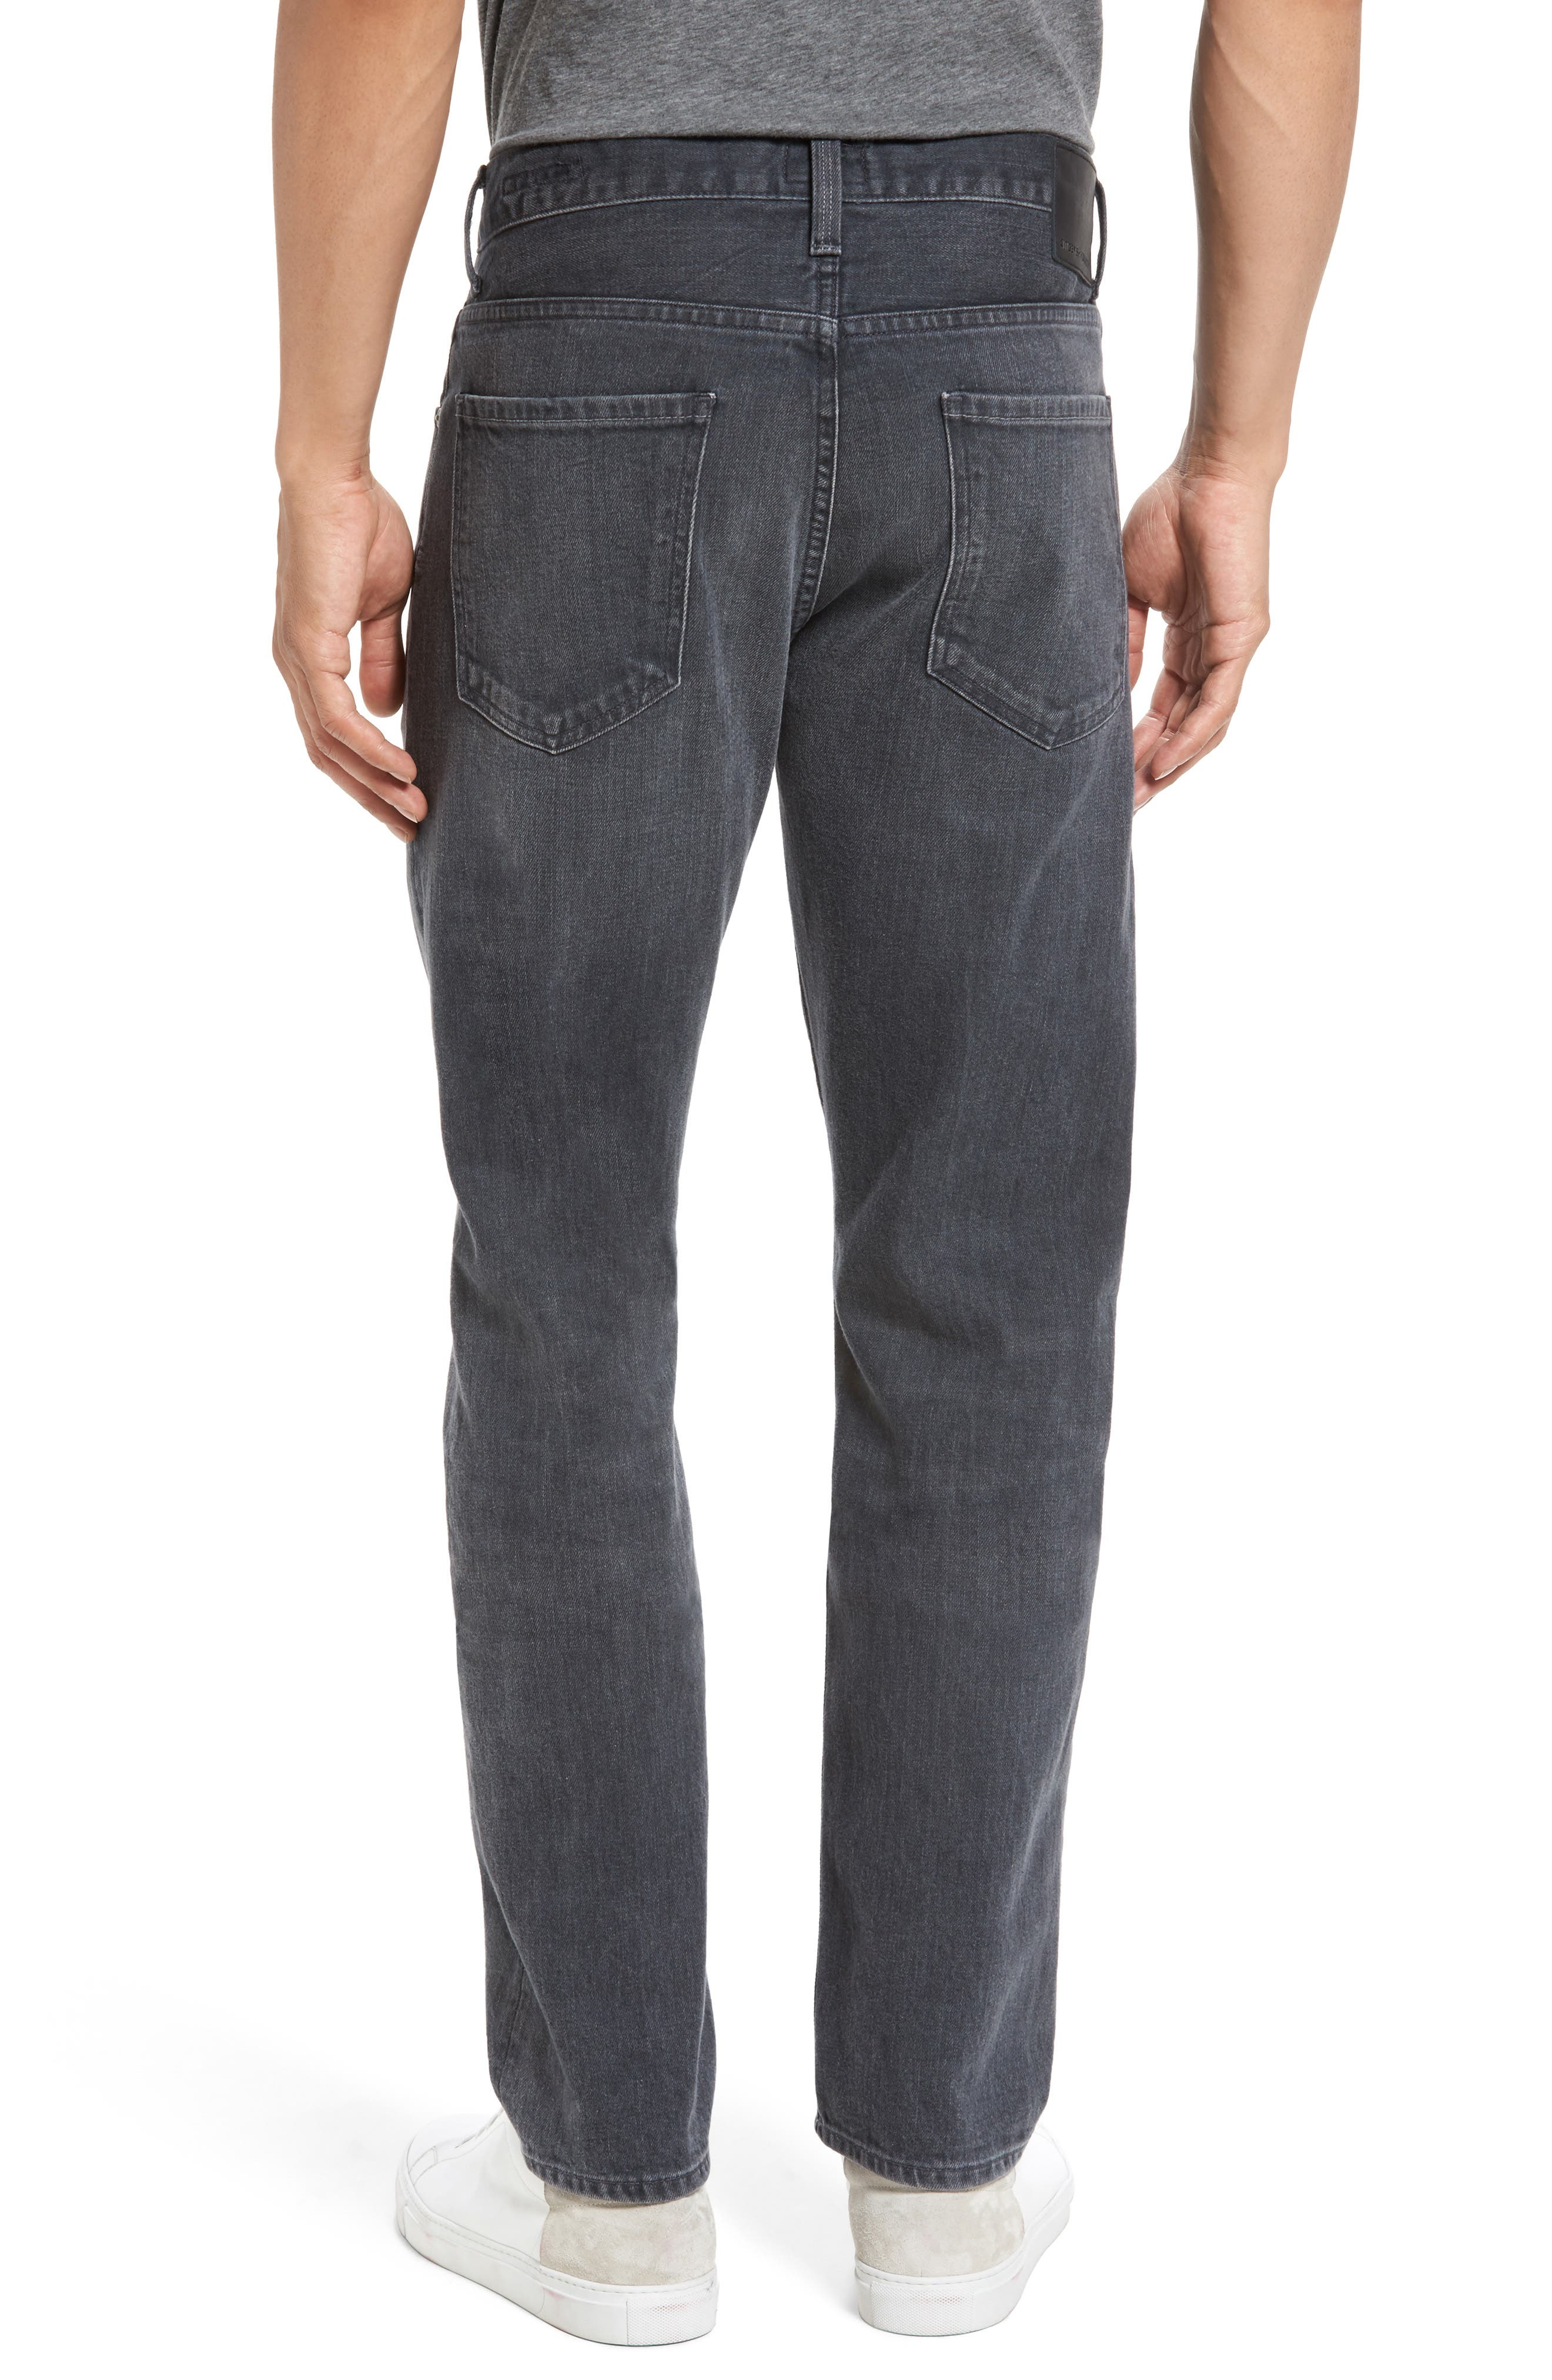 Bowery Slim Fit Jeans,                             Alternate thumbnail 2, color,                             022